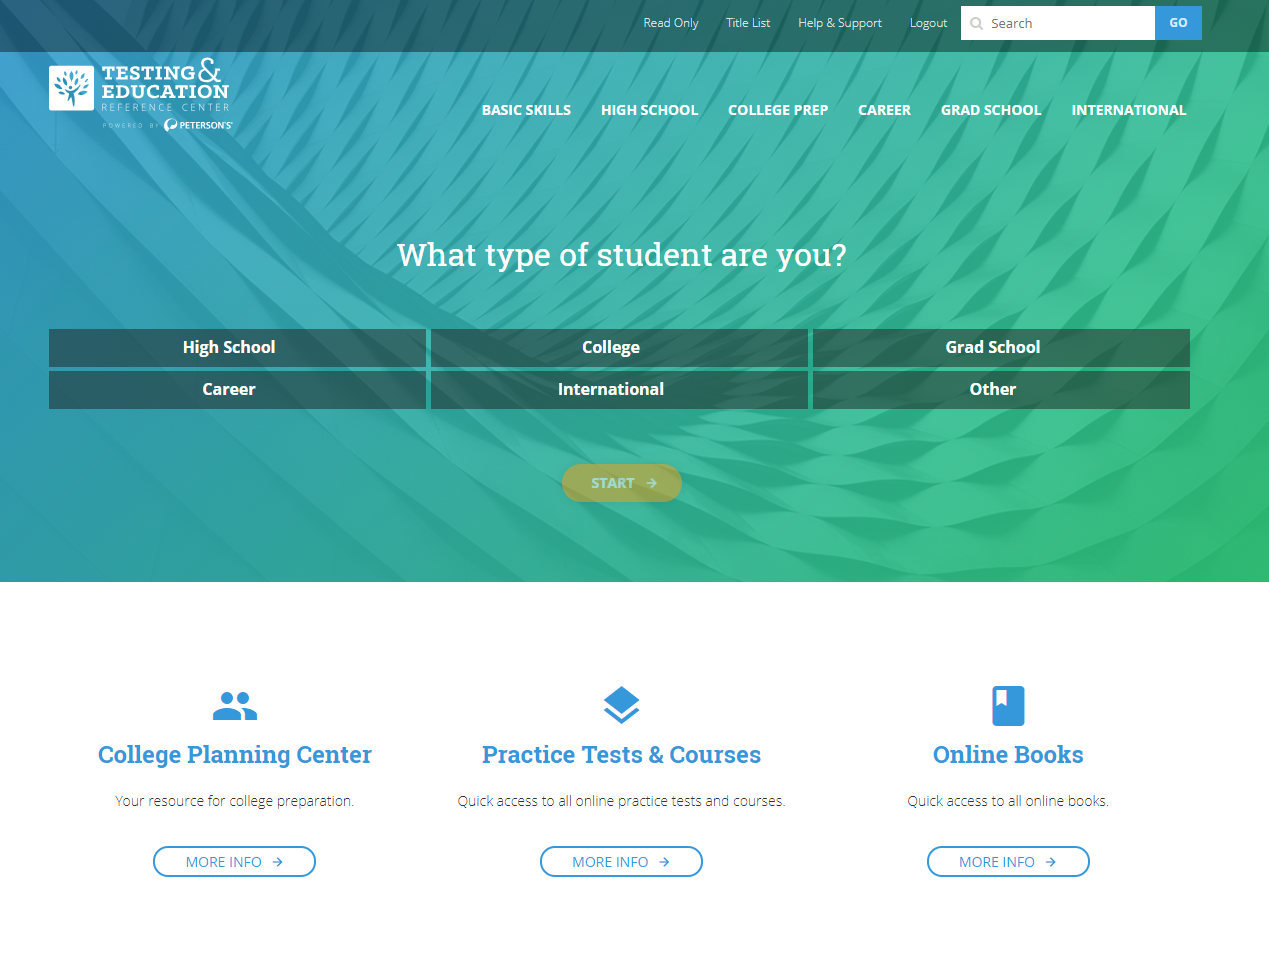 Testing & Education Reference Center (TERC) provides test preparation for those in high school, college, grad school, planning careers, or new to the US.